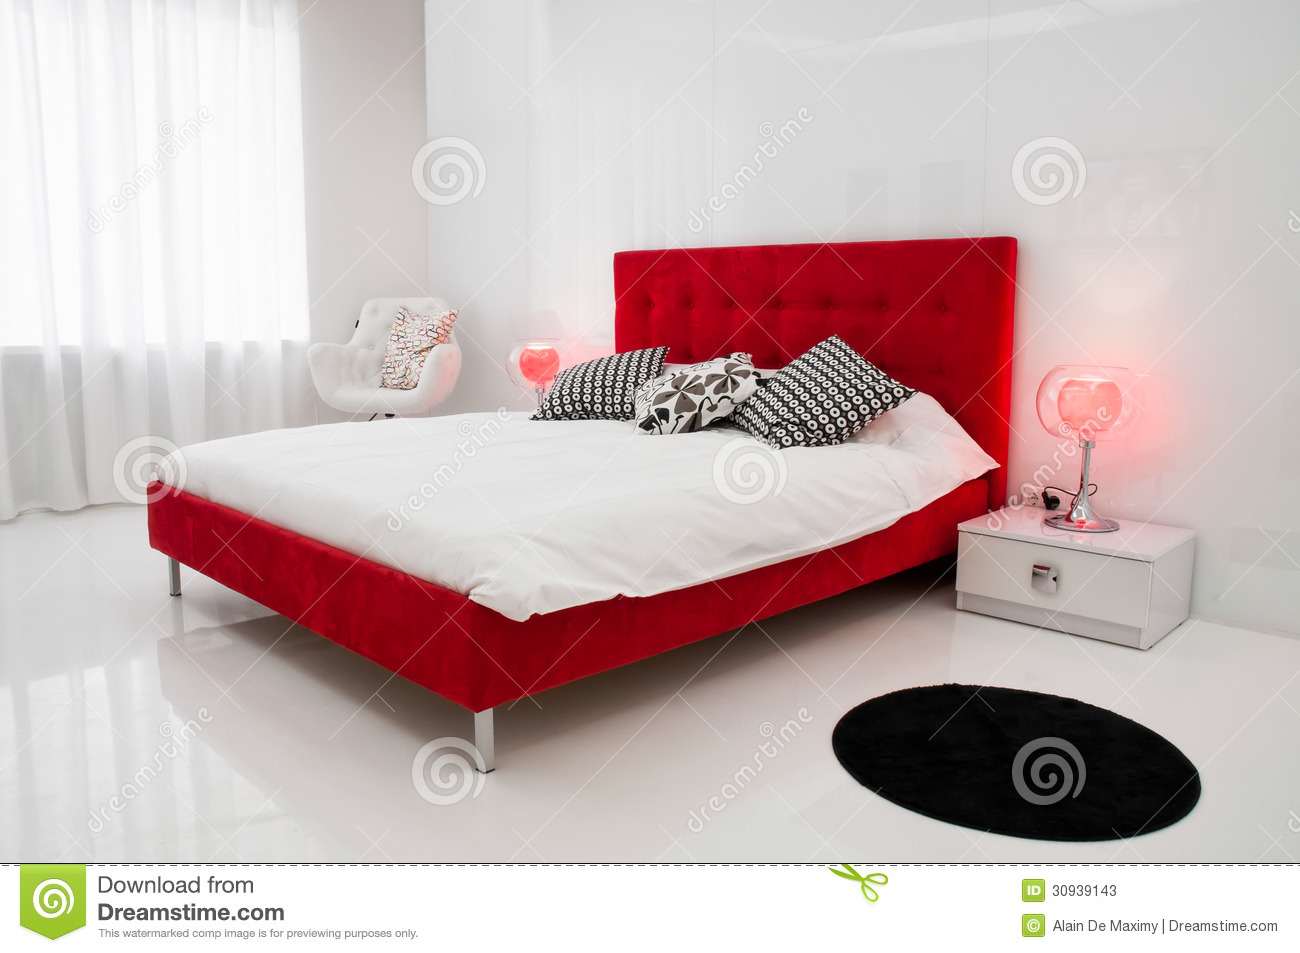 The White Room With A Red Bed Stock Image - Image of furniture ...